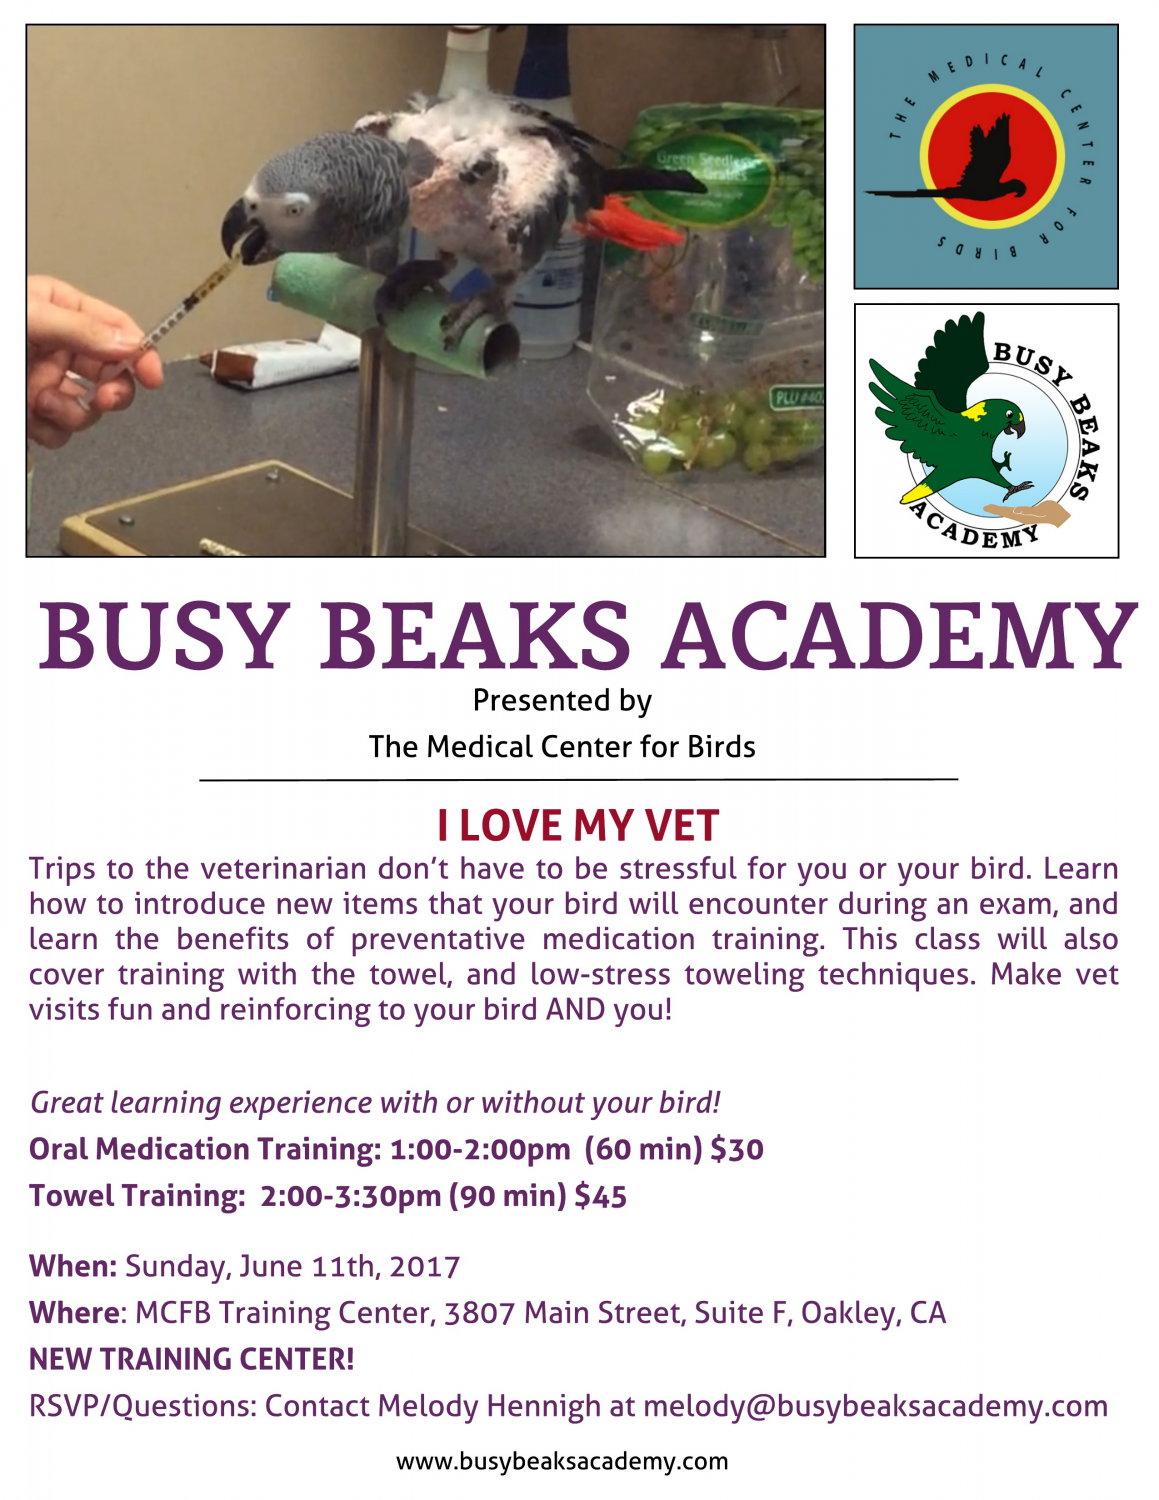 Medical Center For Birds - Busy Beaks Academy - I Love My Vet